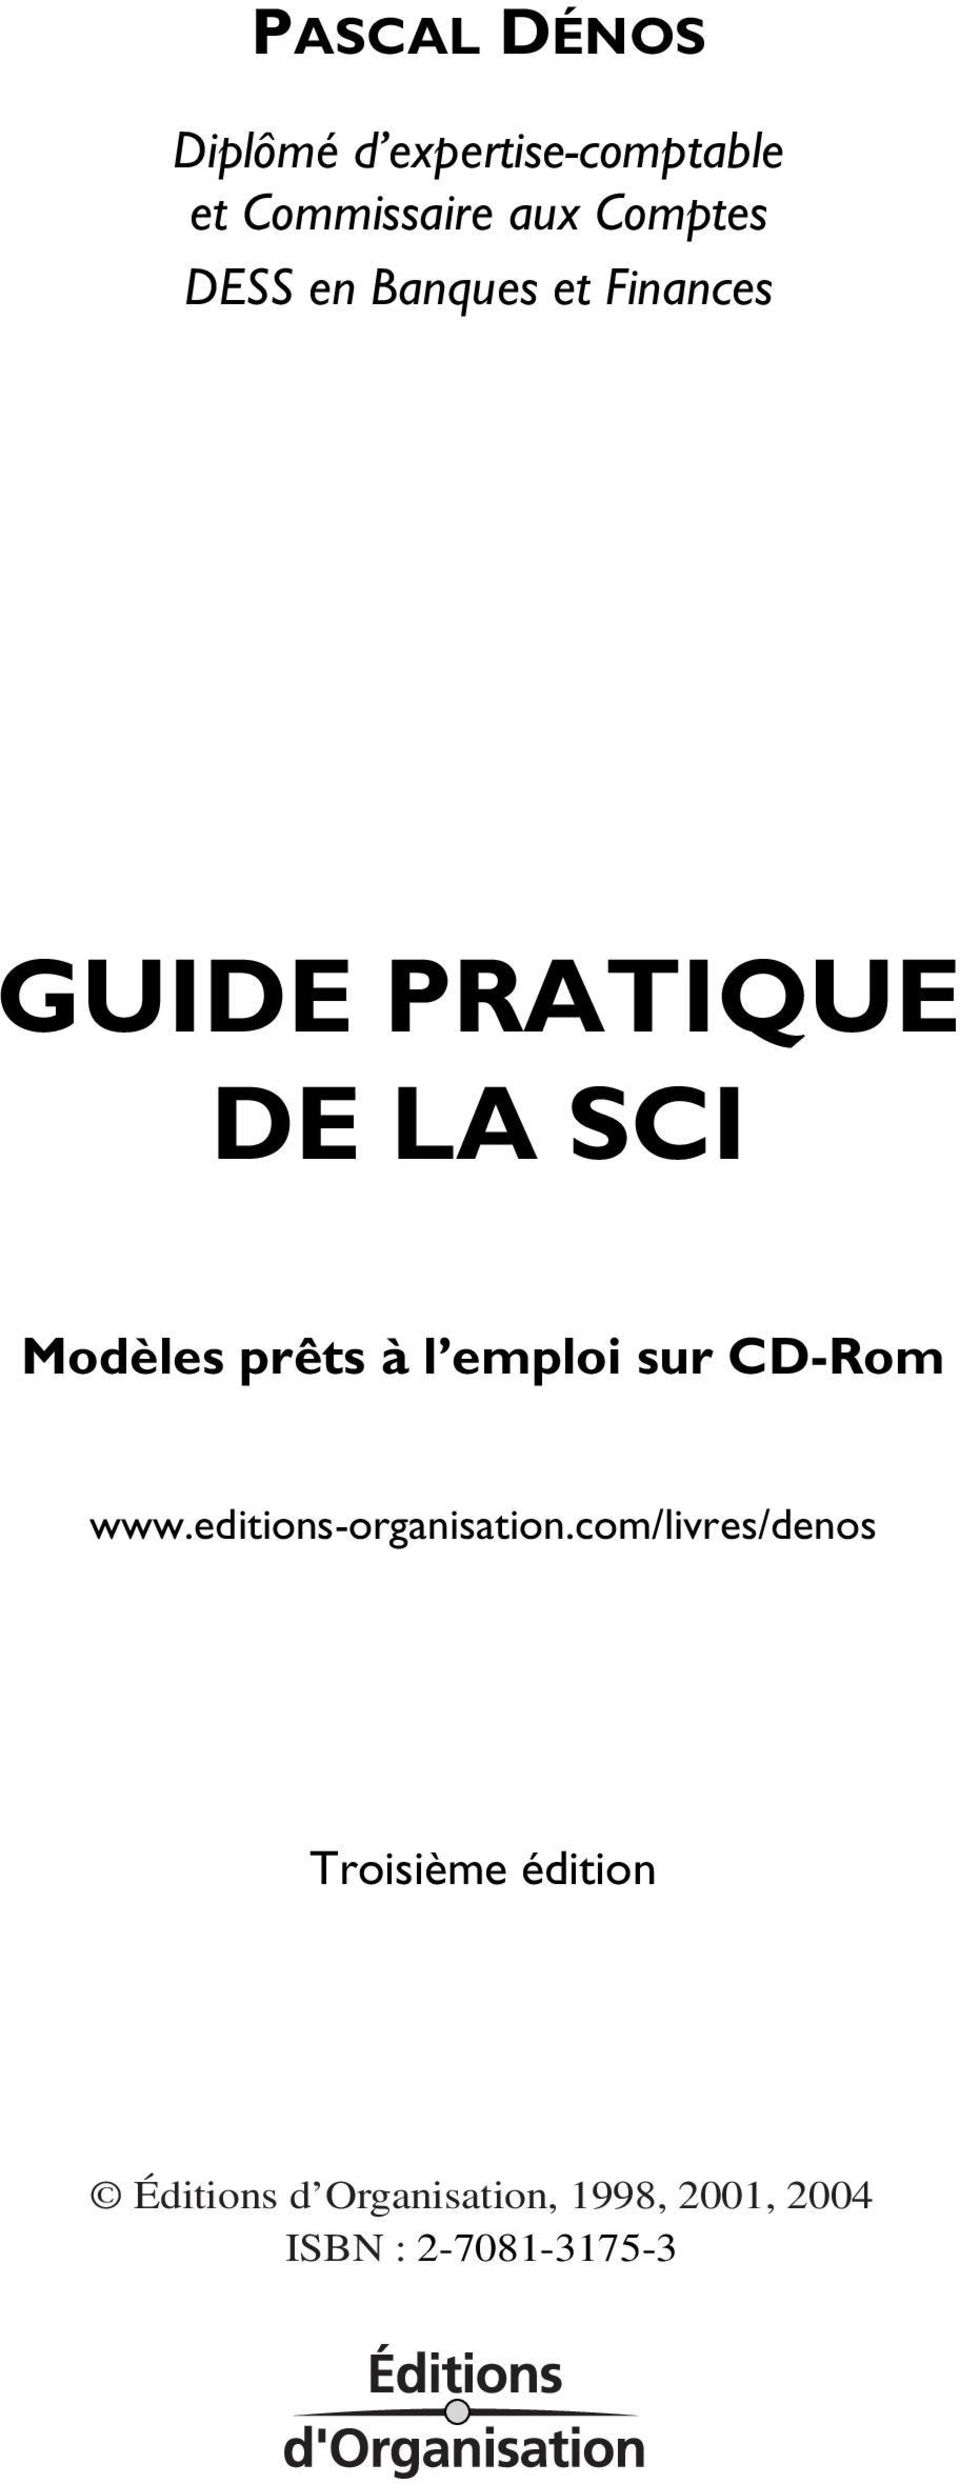 emploi sur CD-Rom www.editions-organisation.